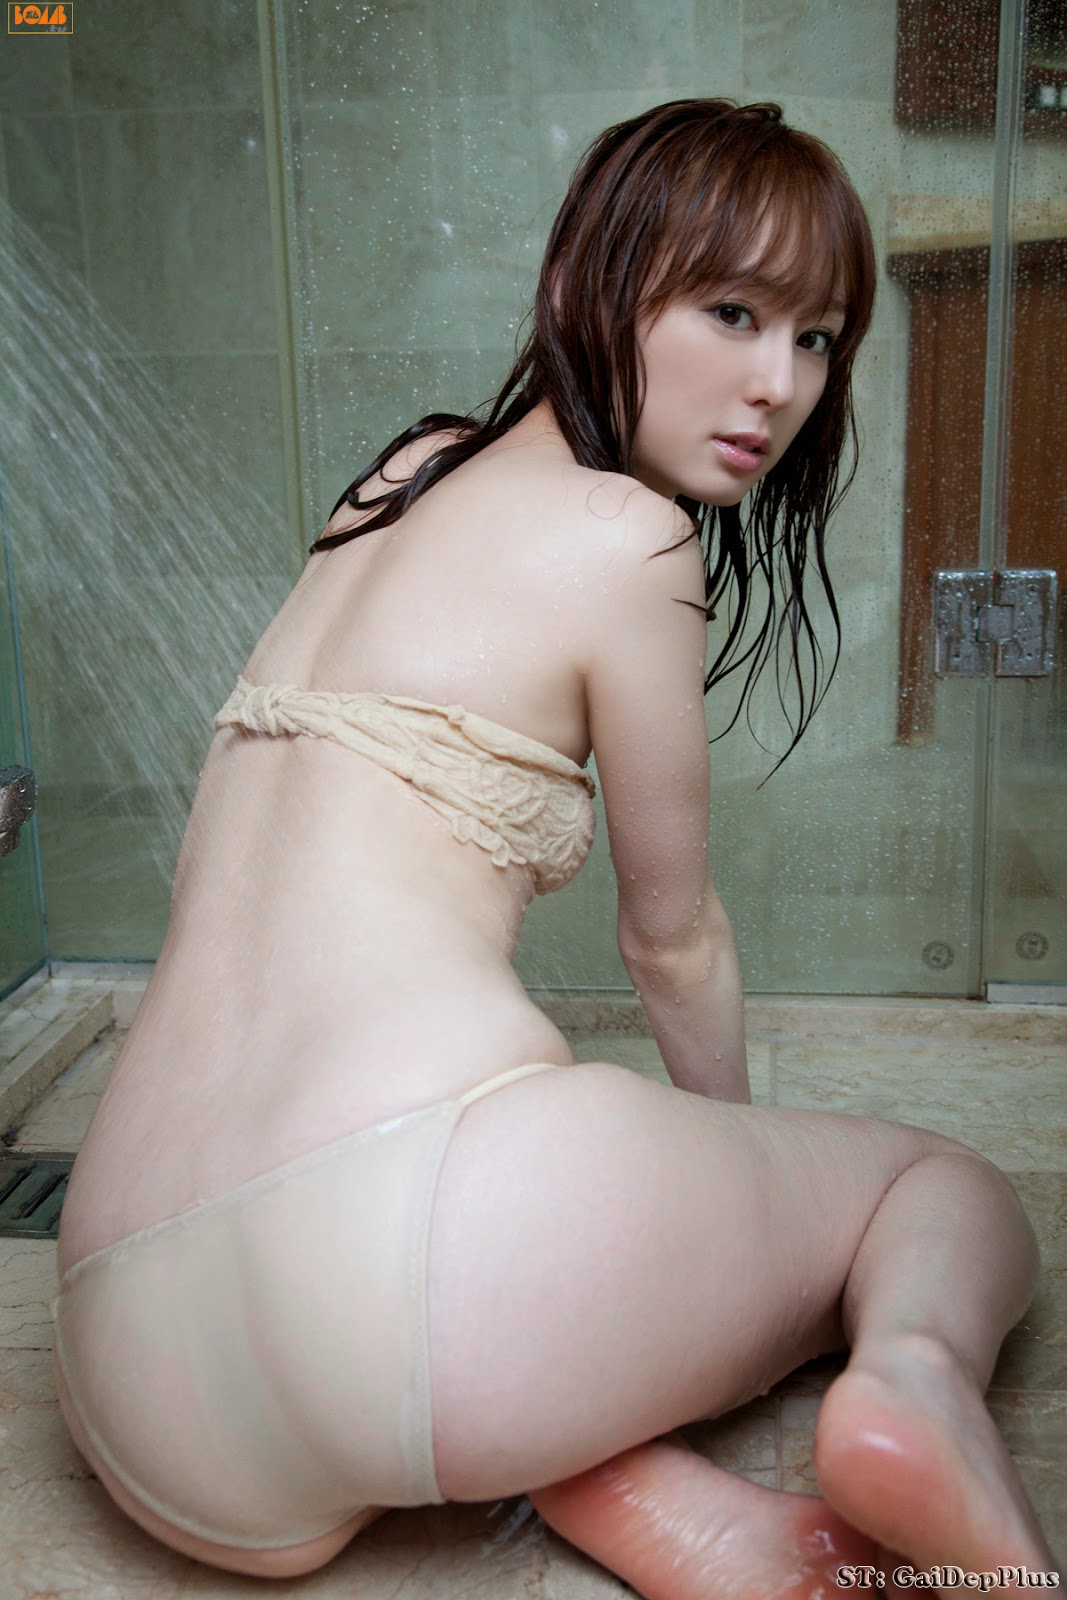 Amelia Intan Nude asia: girl cute showing hot body in the bathroom | cute meki